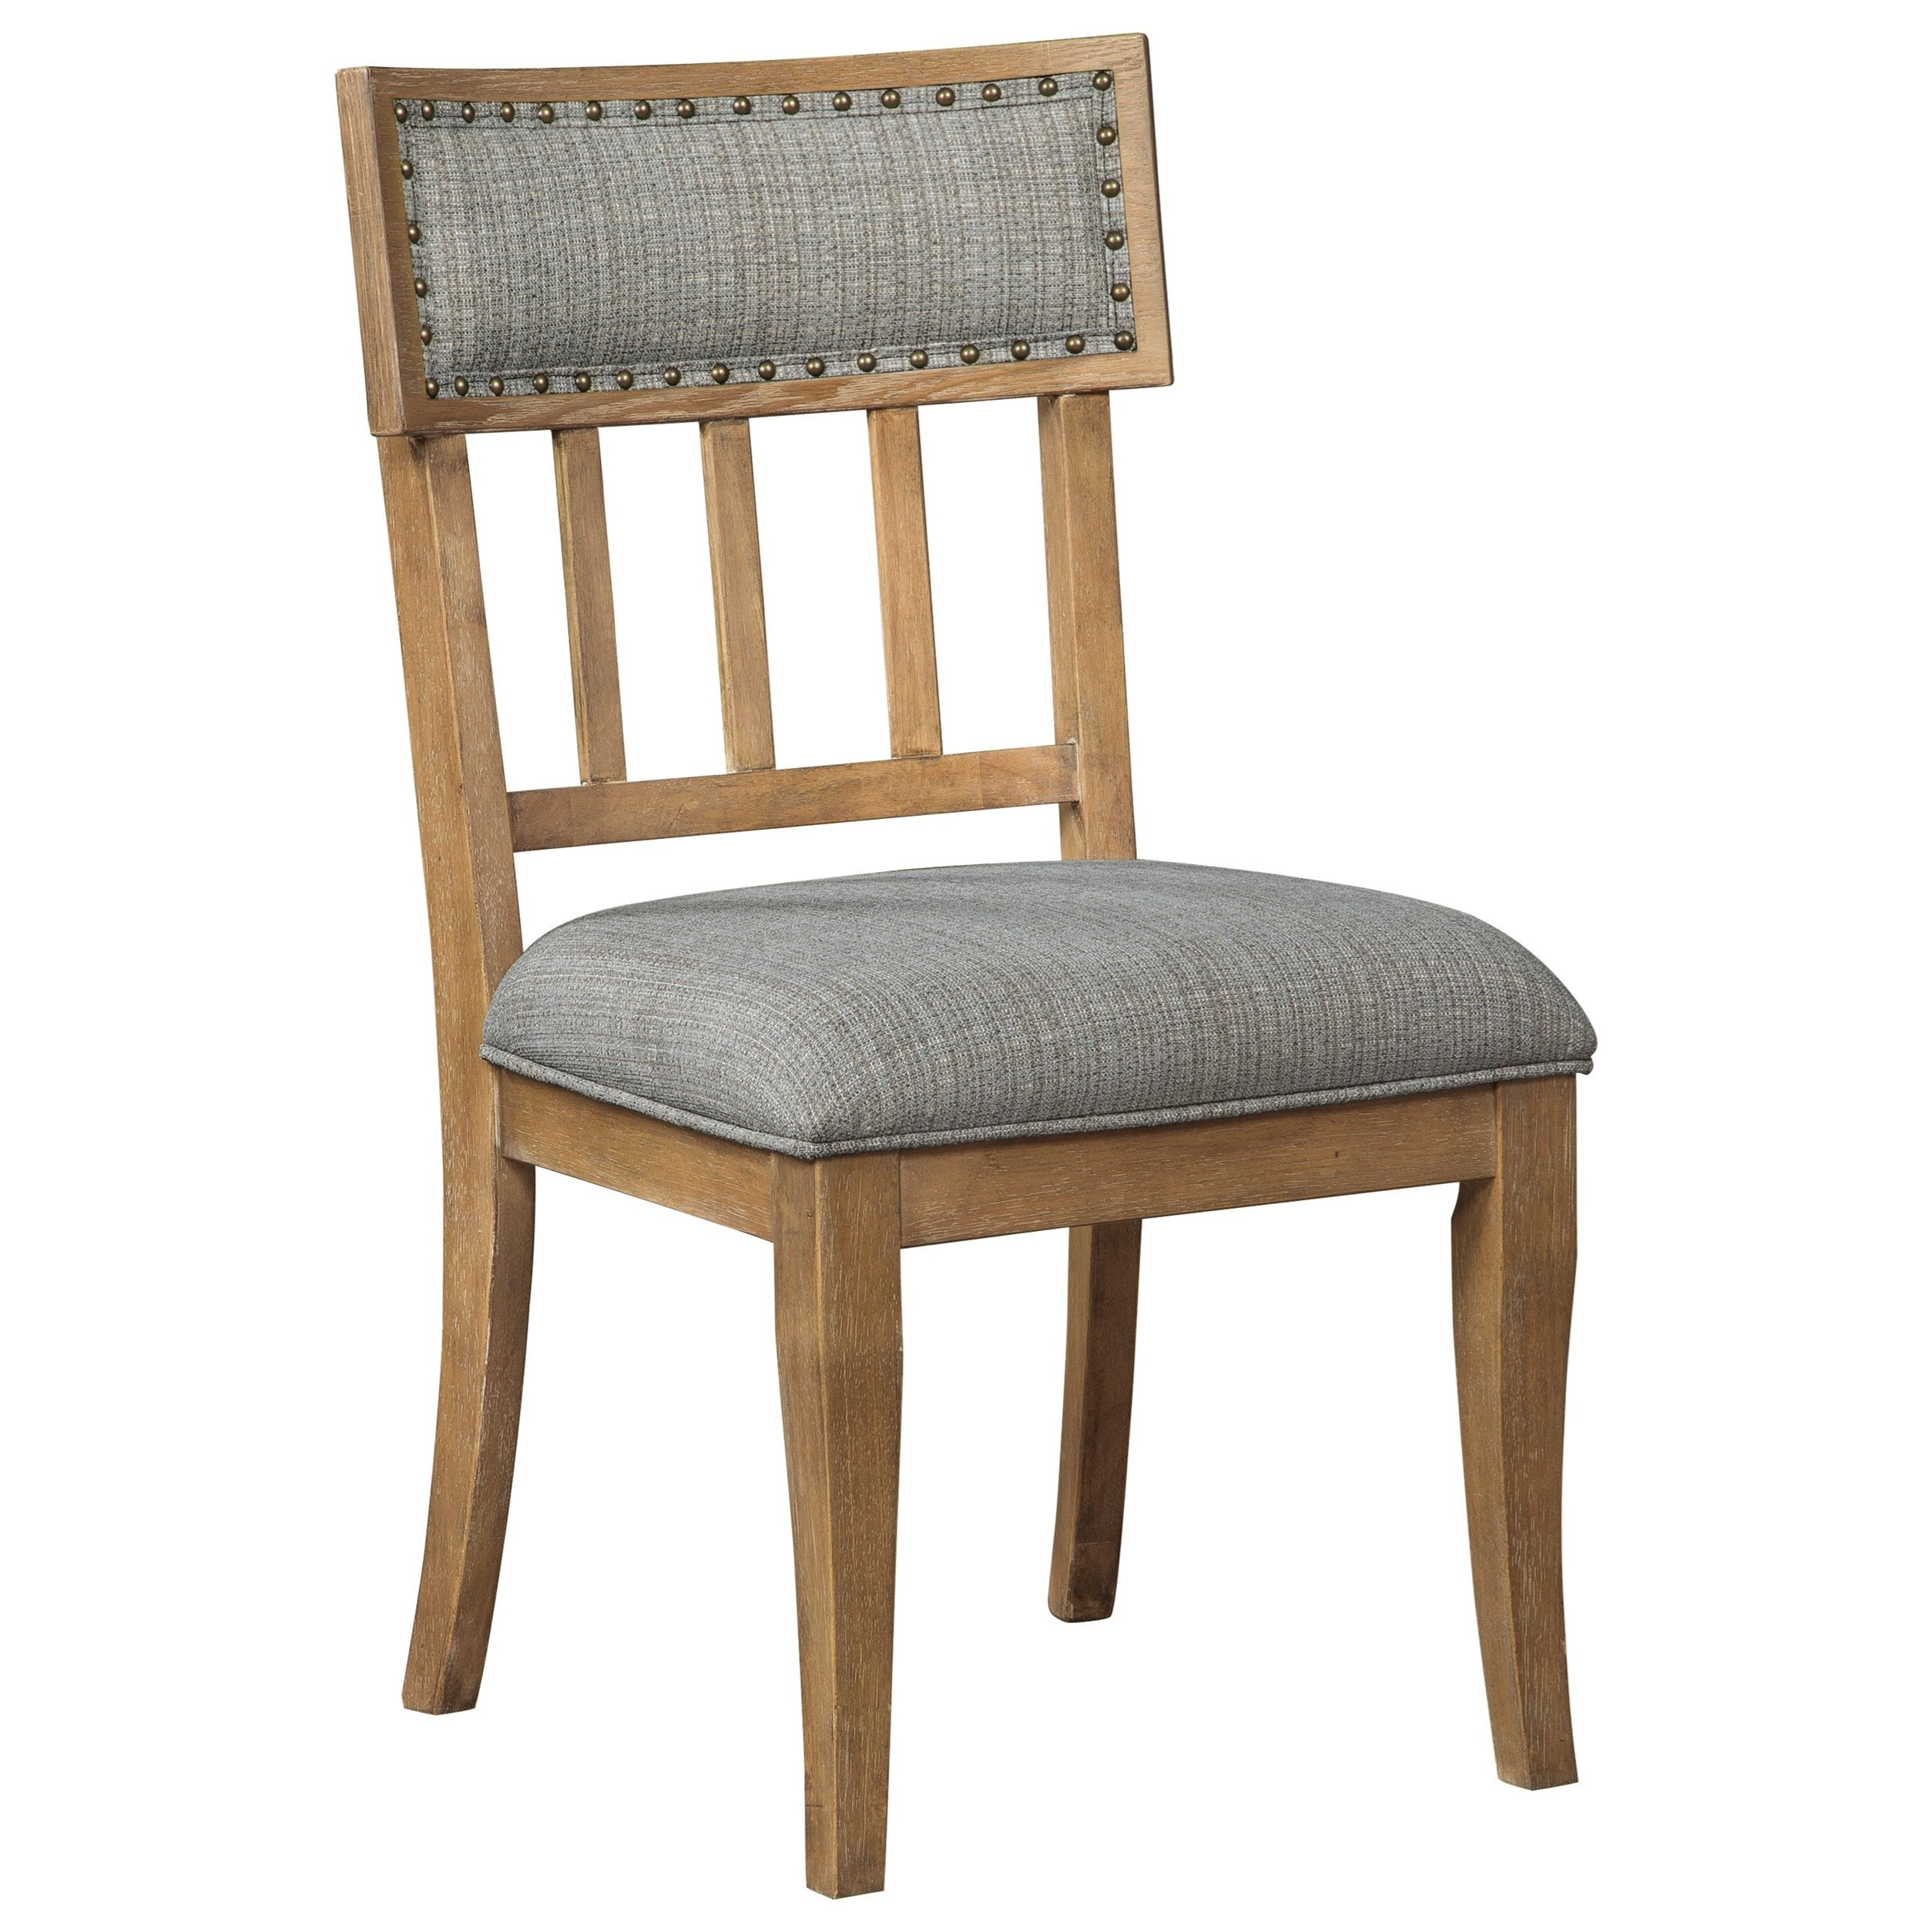 Ollesburg Upholstered Dining Side Chair by Millennium at Lapeer Furniture & Mattress Center